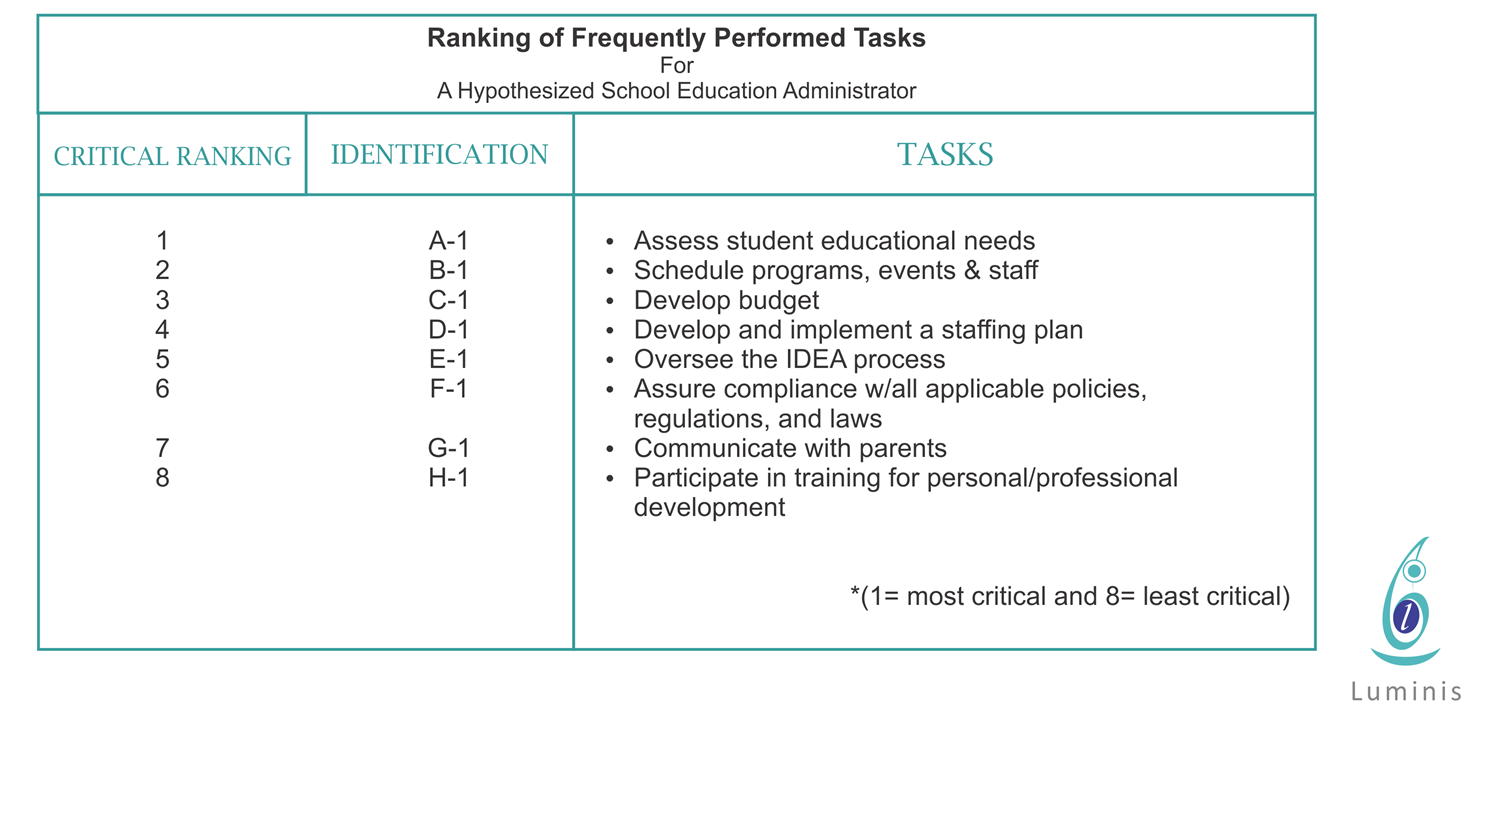 DACUM Ranking of Frequently Performed Tasks